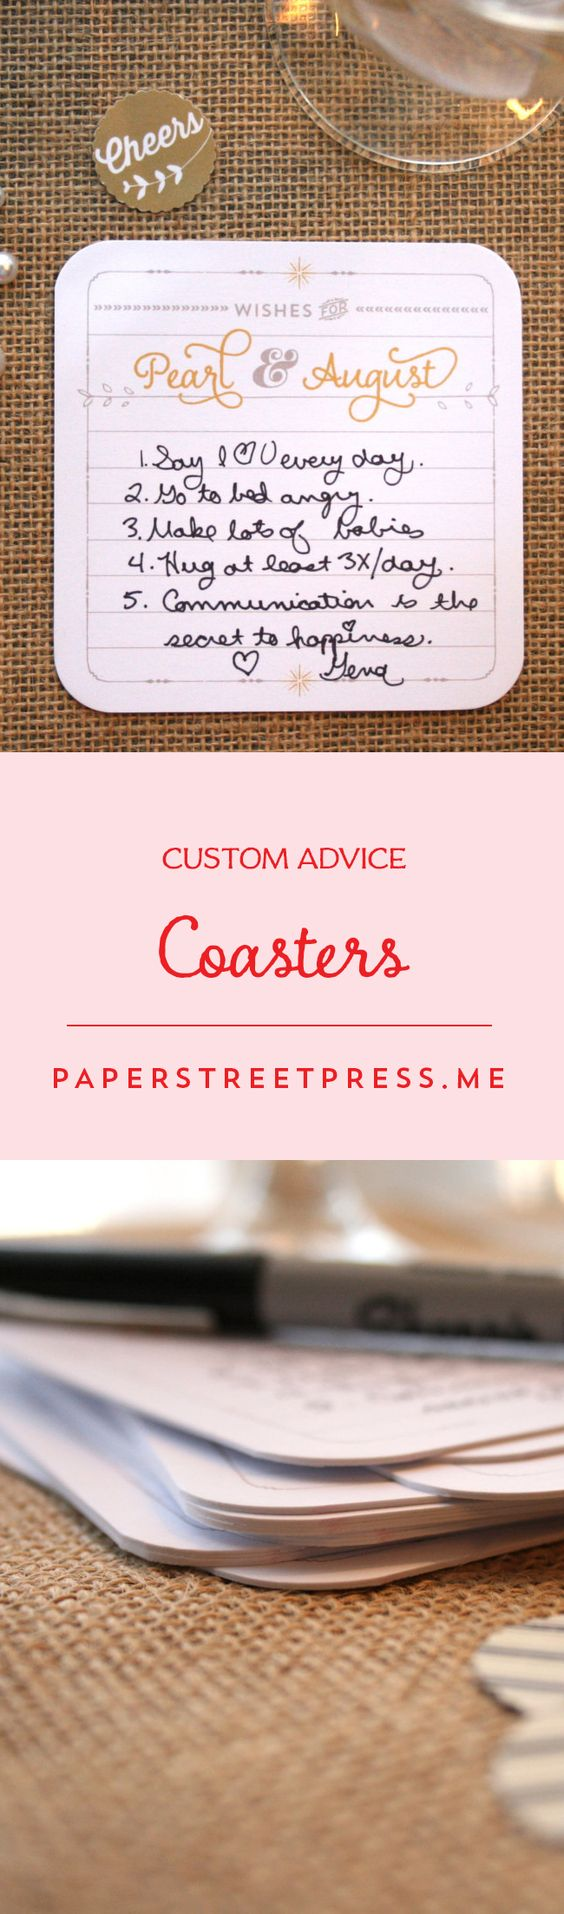 Add some personalized flair to your table decor with these cute coasters. $1.03+ from Paper Street Press #wedding #coasters